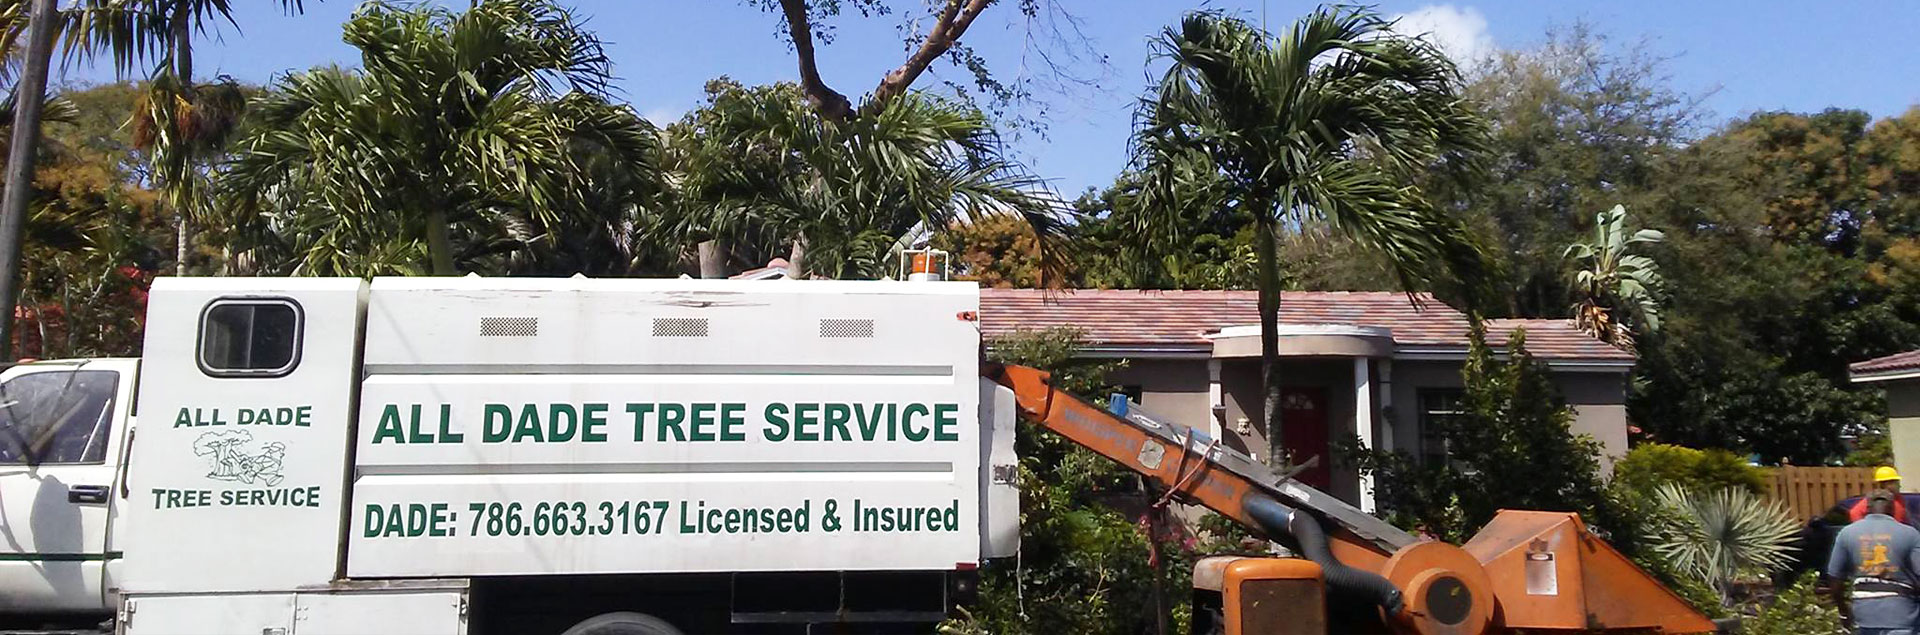 Tree Removal Services, Tree Services